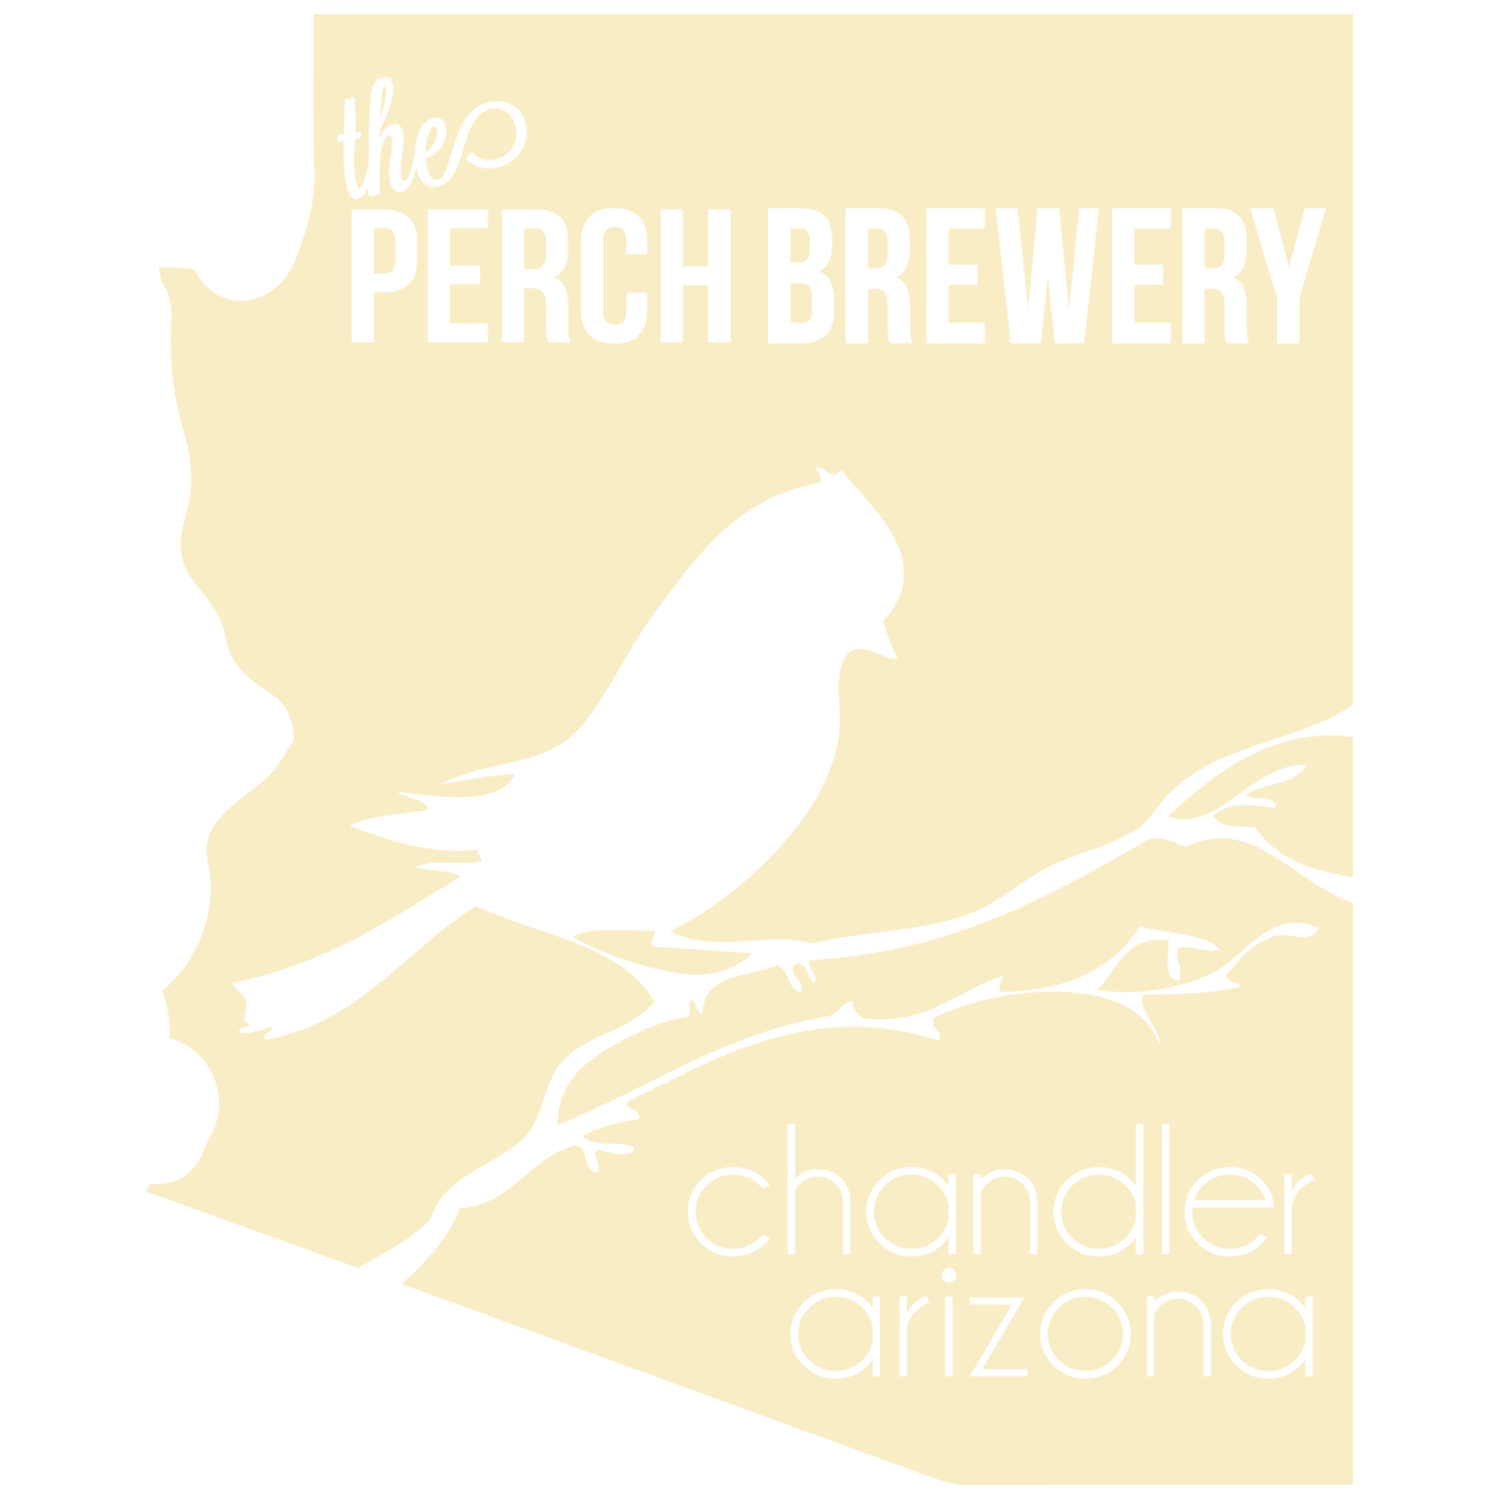 The Perch Brewery